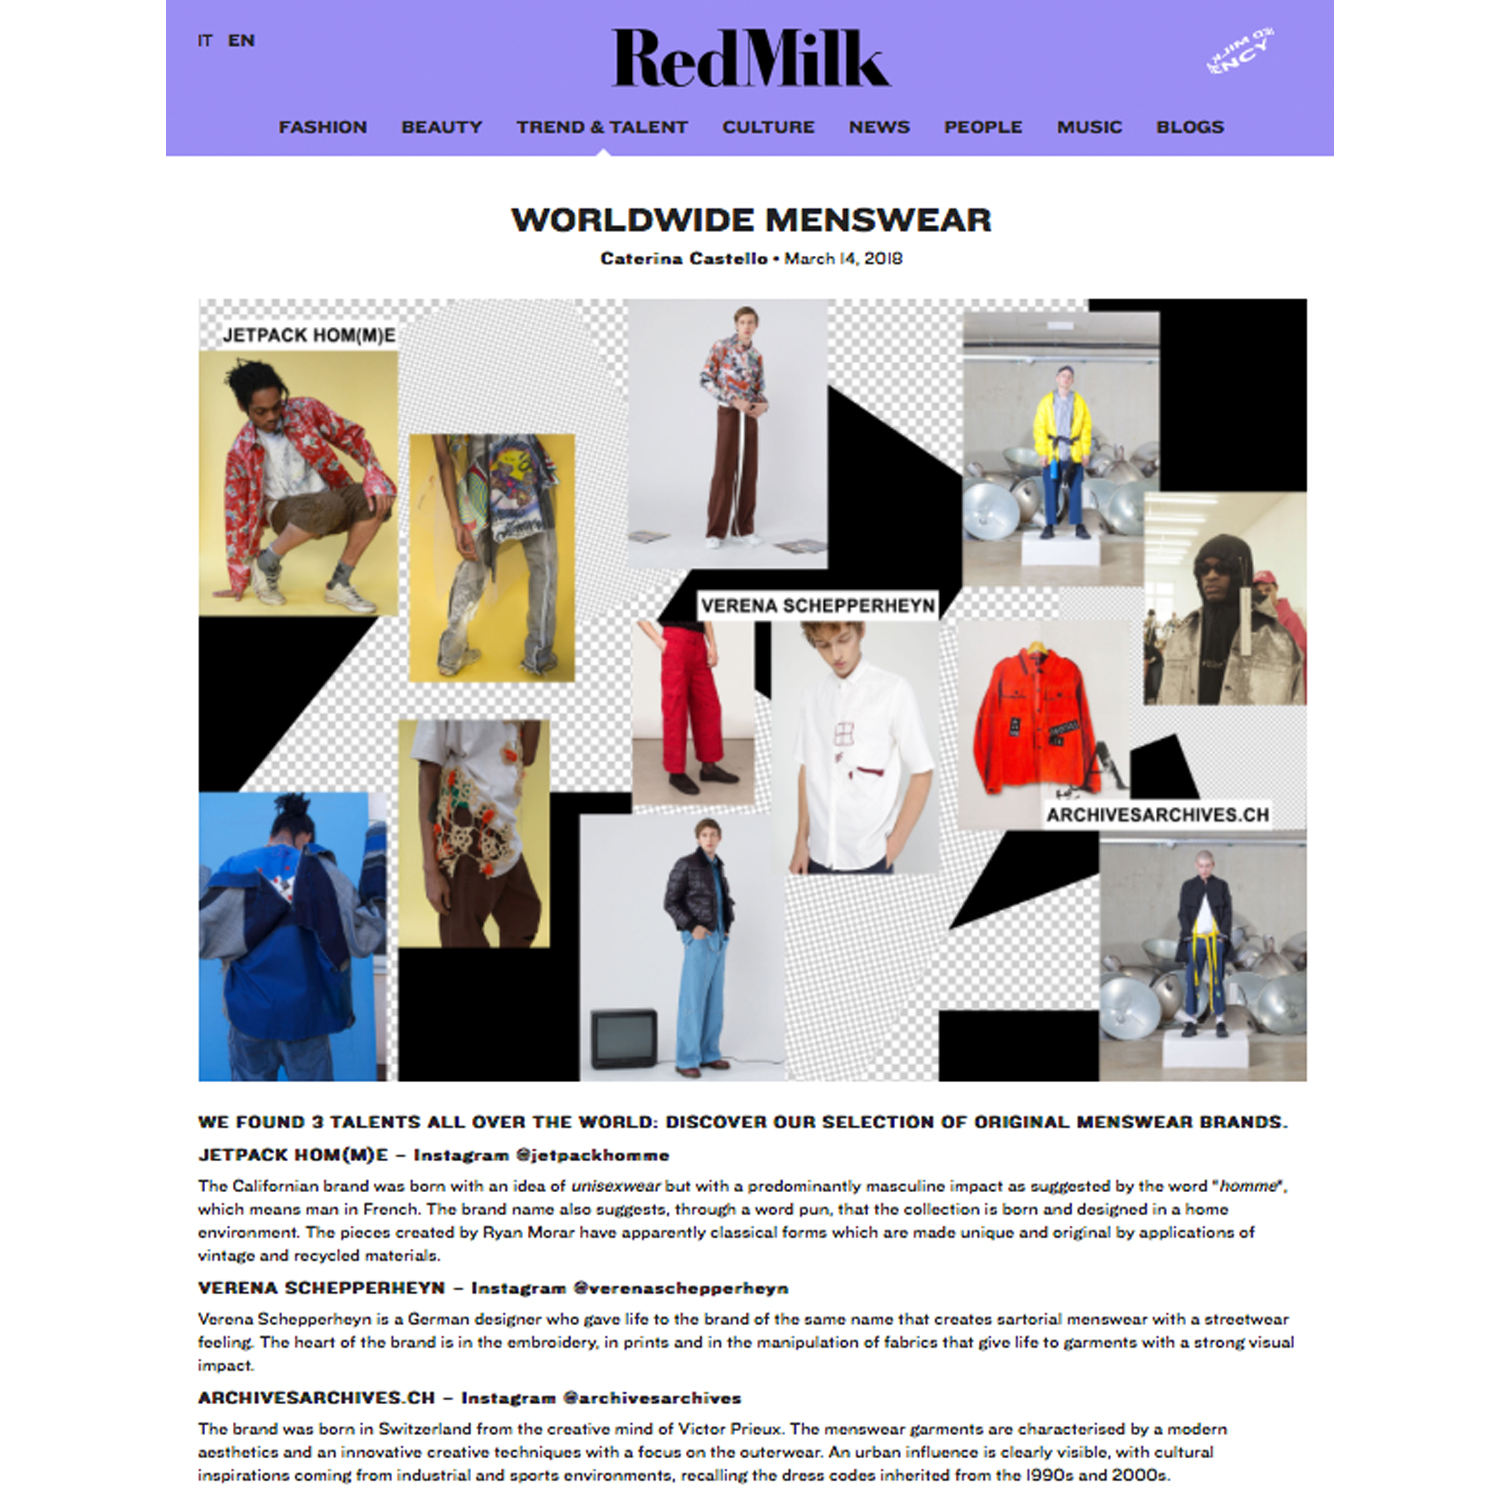 redmilk clipping 1.jpg